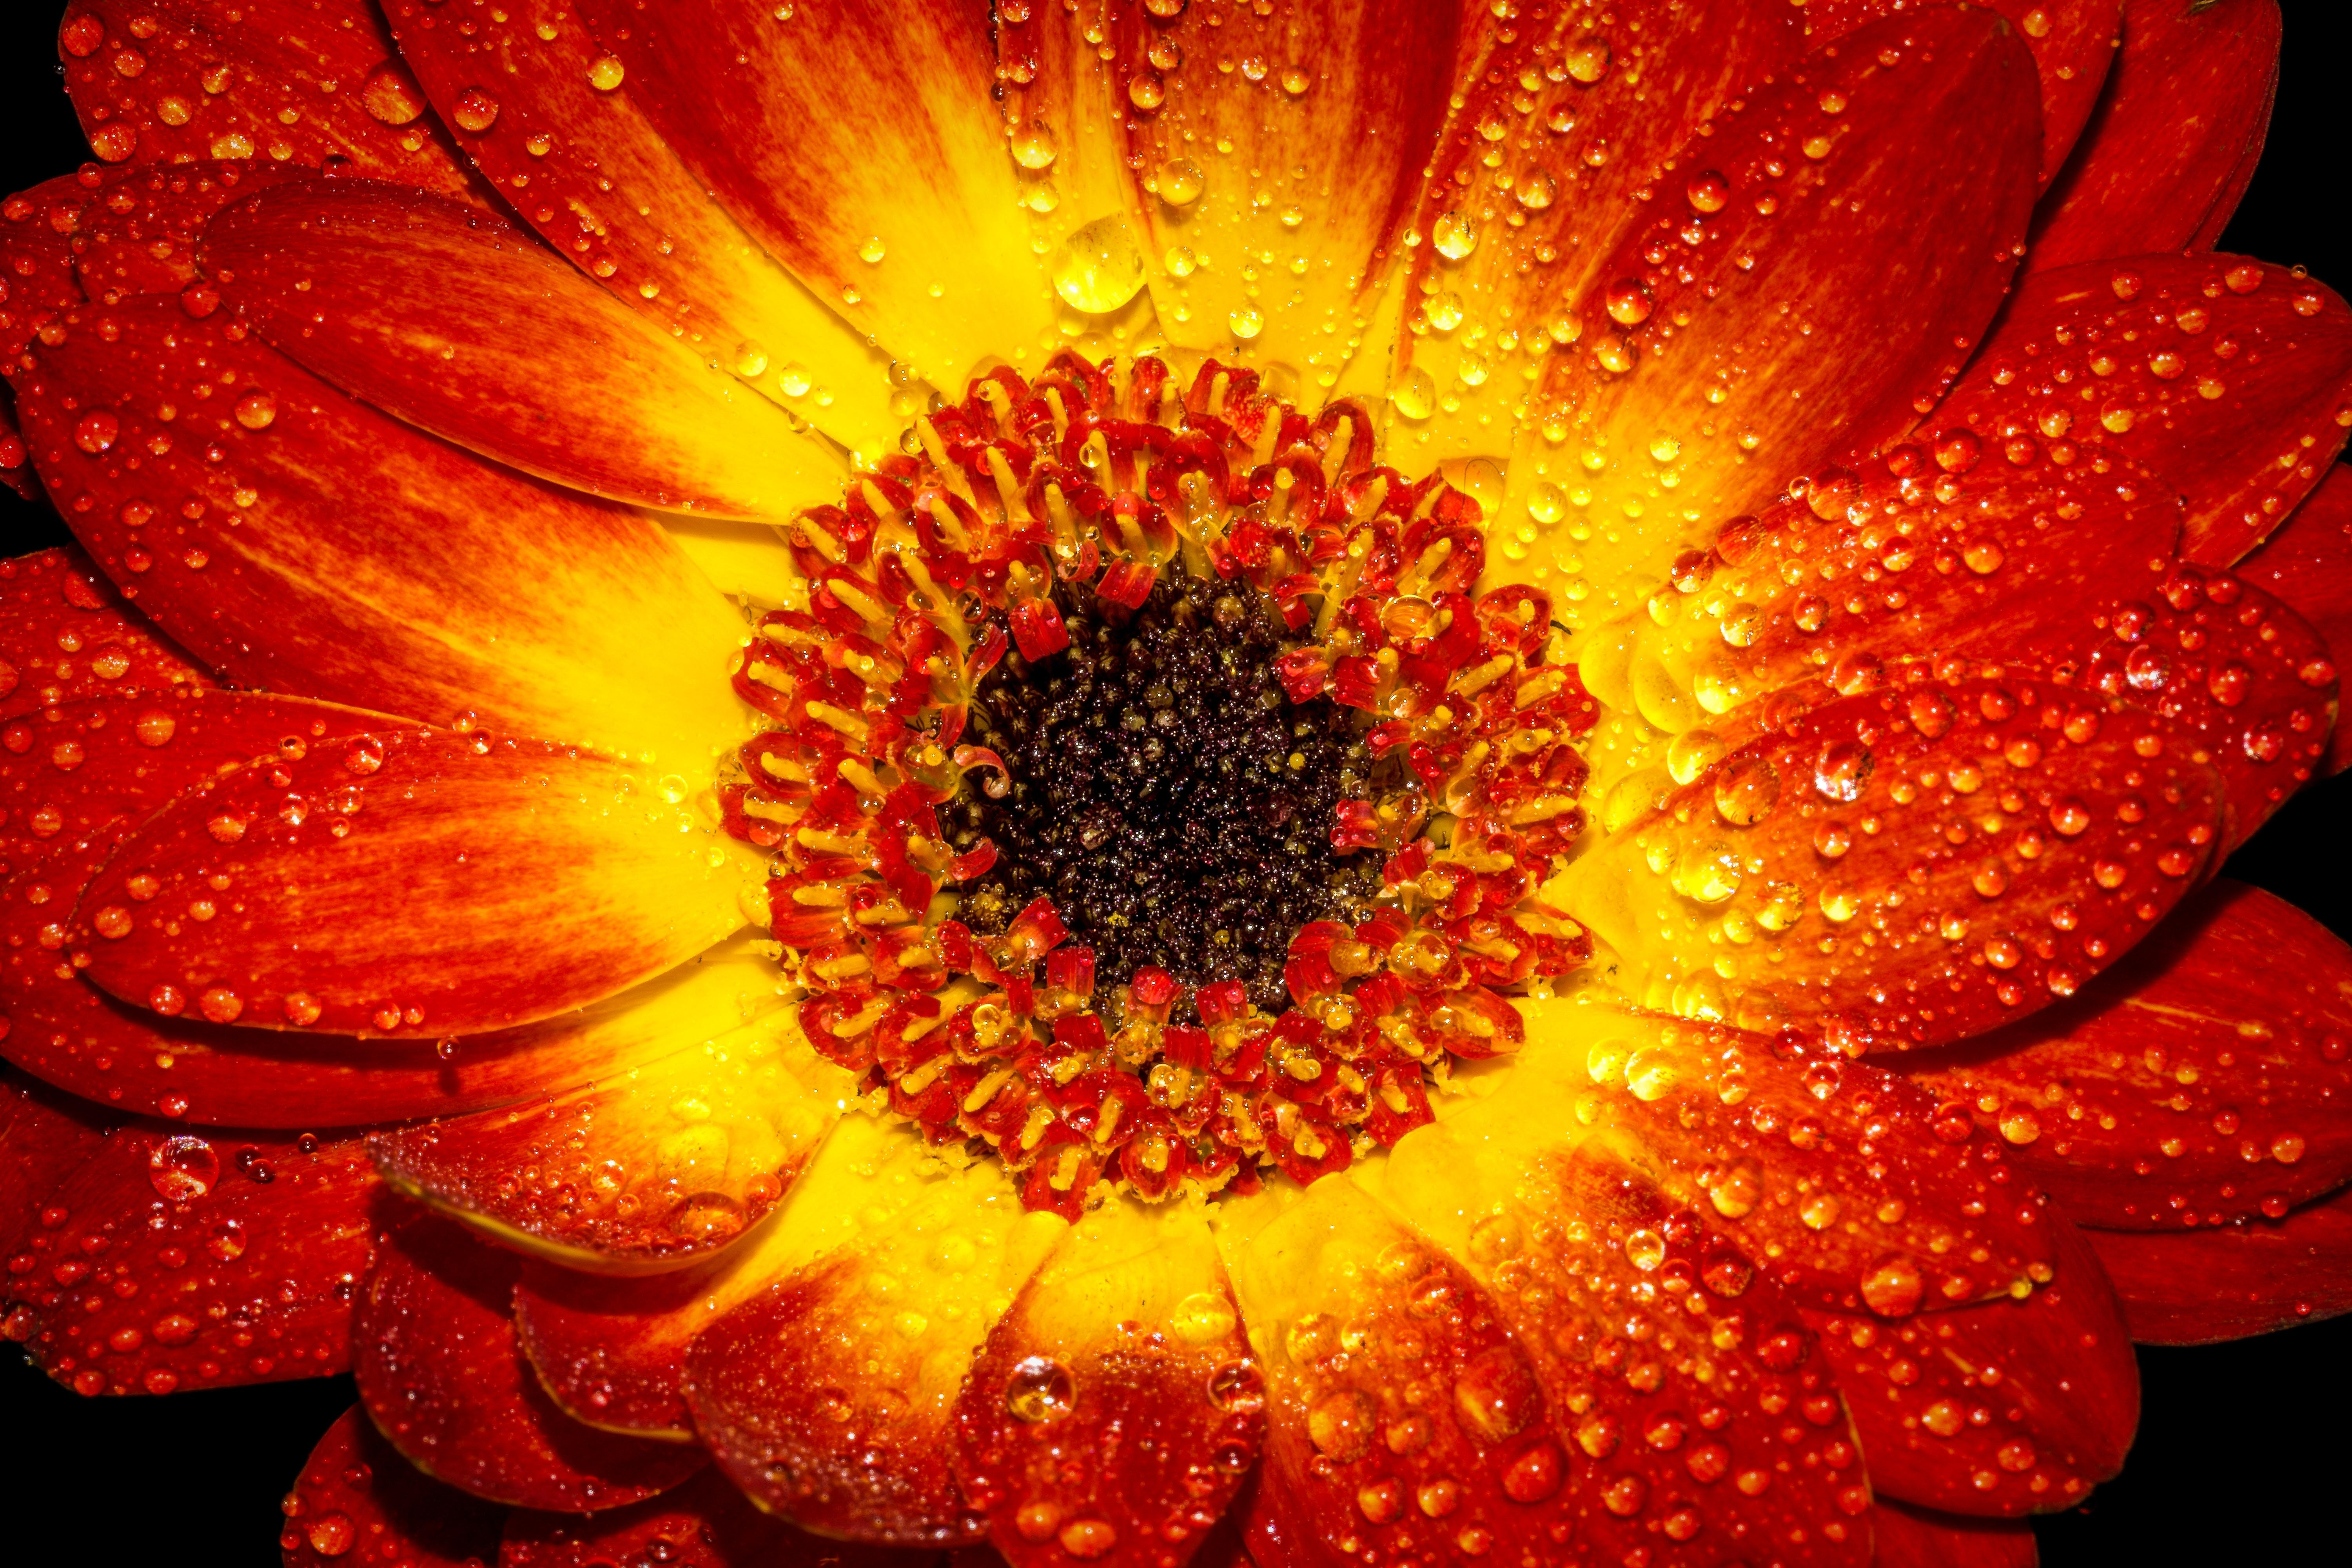 Red And Yellow Flower With Water Sprinkles Free Stock Photo